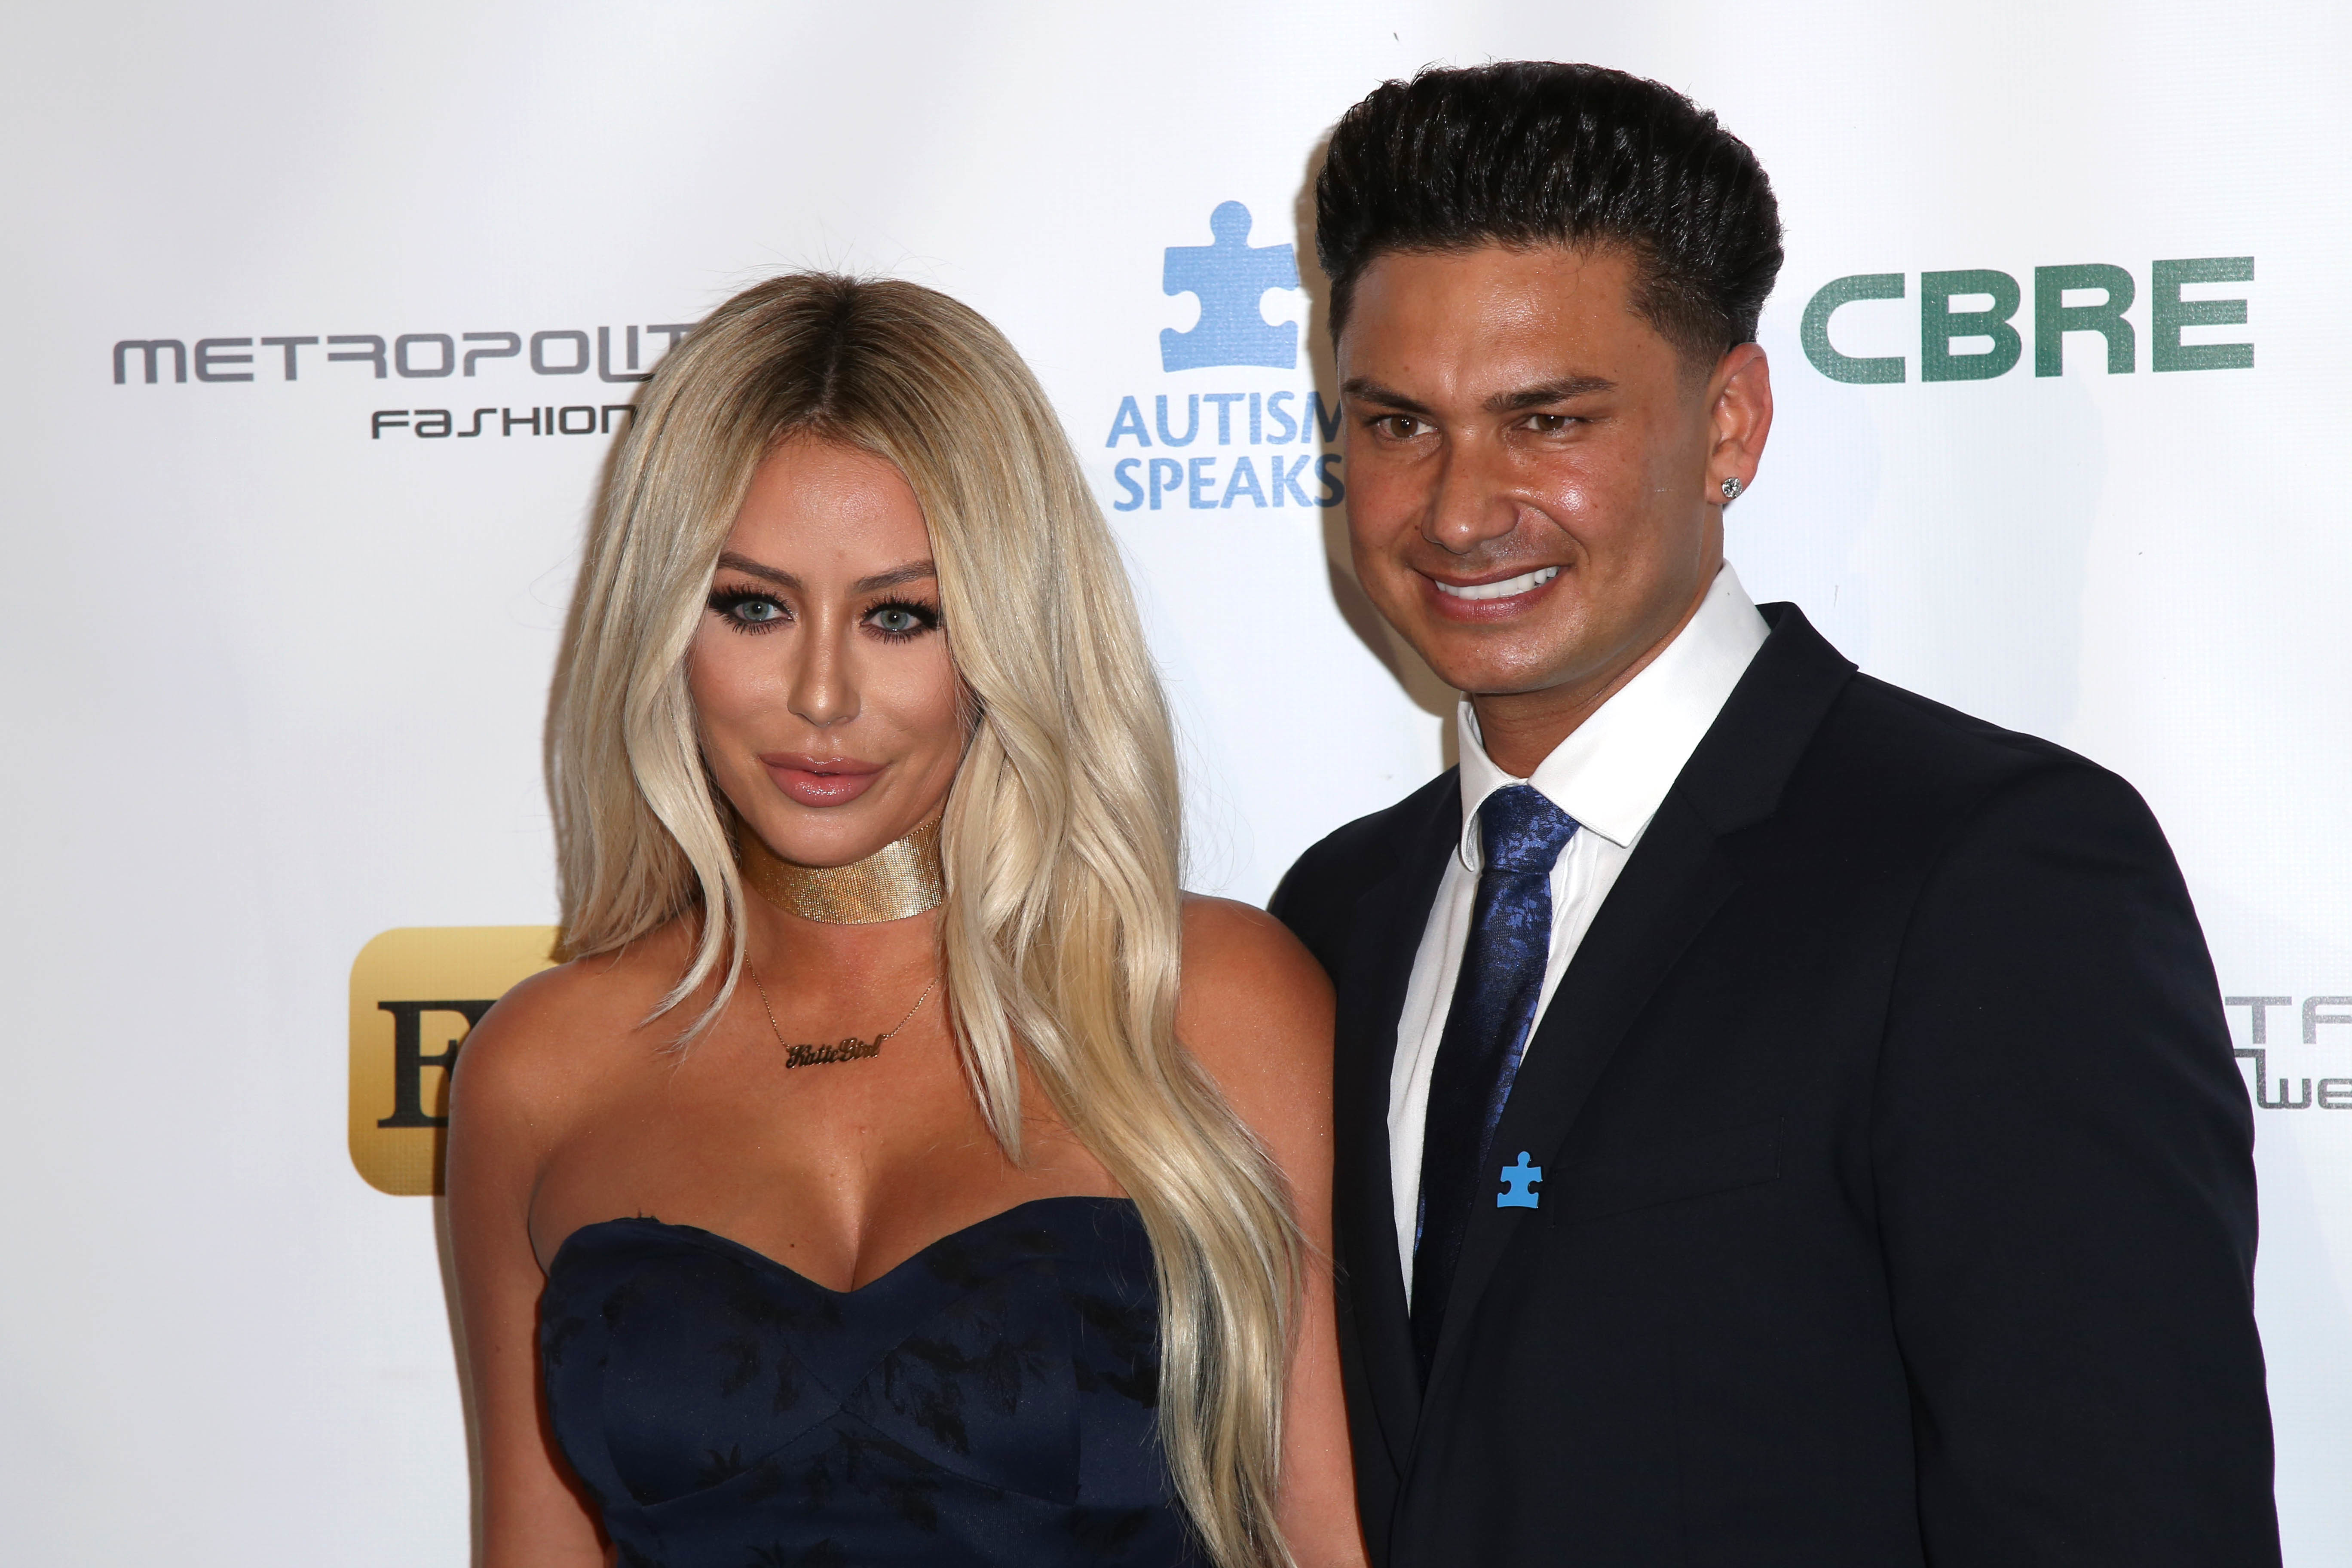 Aubrey O'Day and Paul DelVecchio attends Autism Speaks La Vie En Blue Fashion Gal in Los Angeles on Sept. 29, 2016.